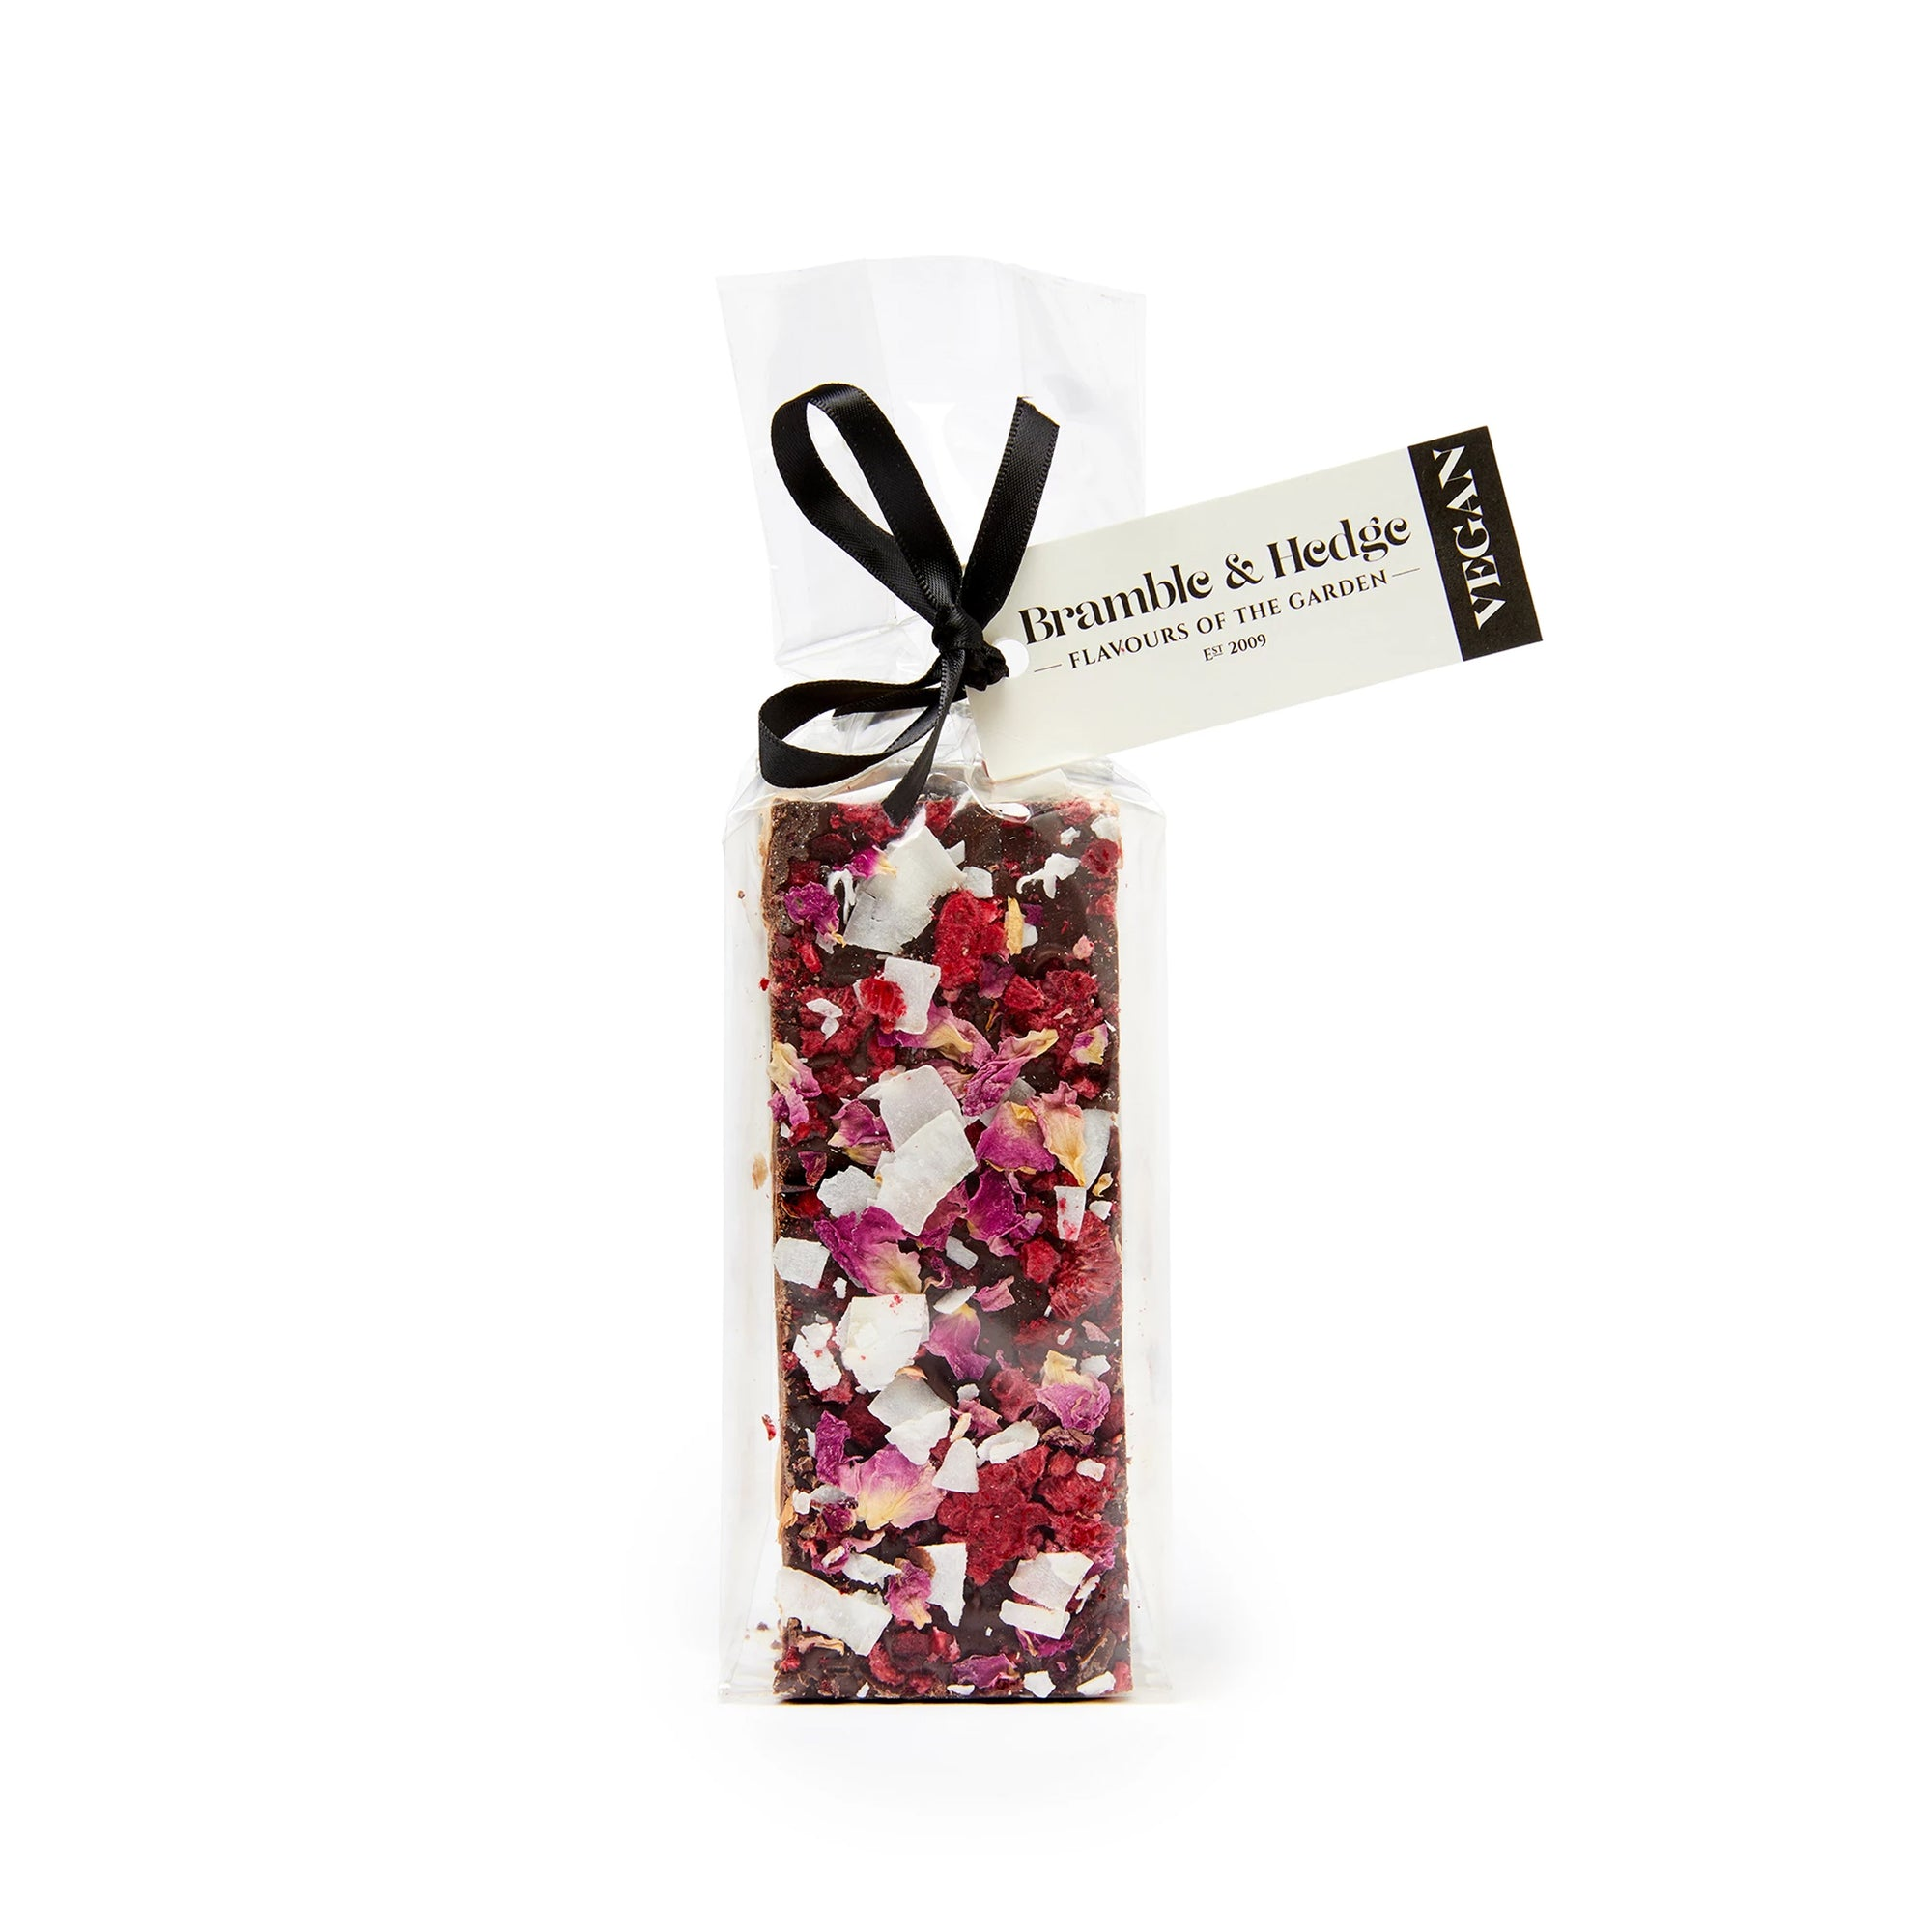 Bramble & Hedge - Vegan Nougat - Sour Cherry & Raspberry  150g